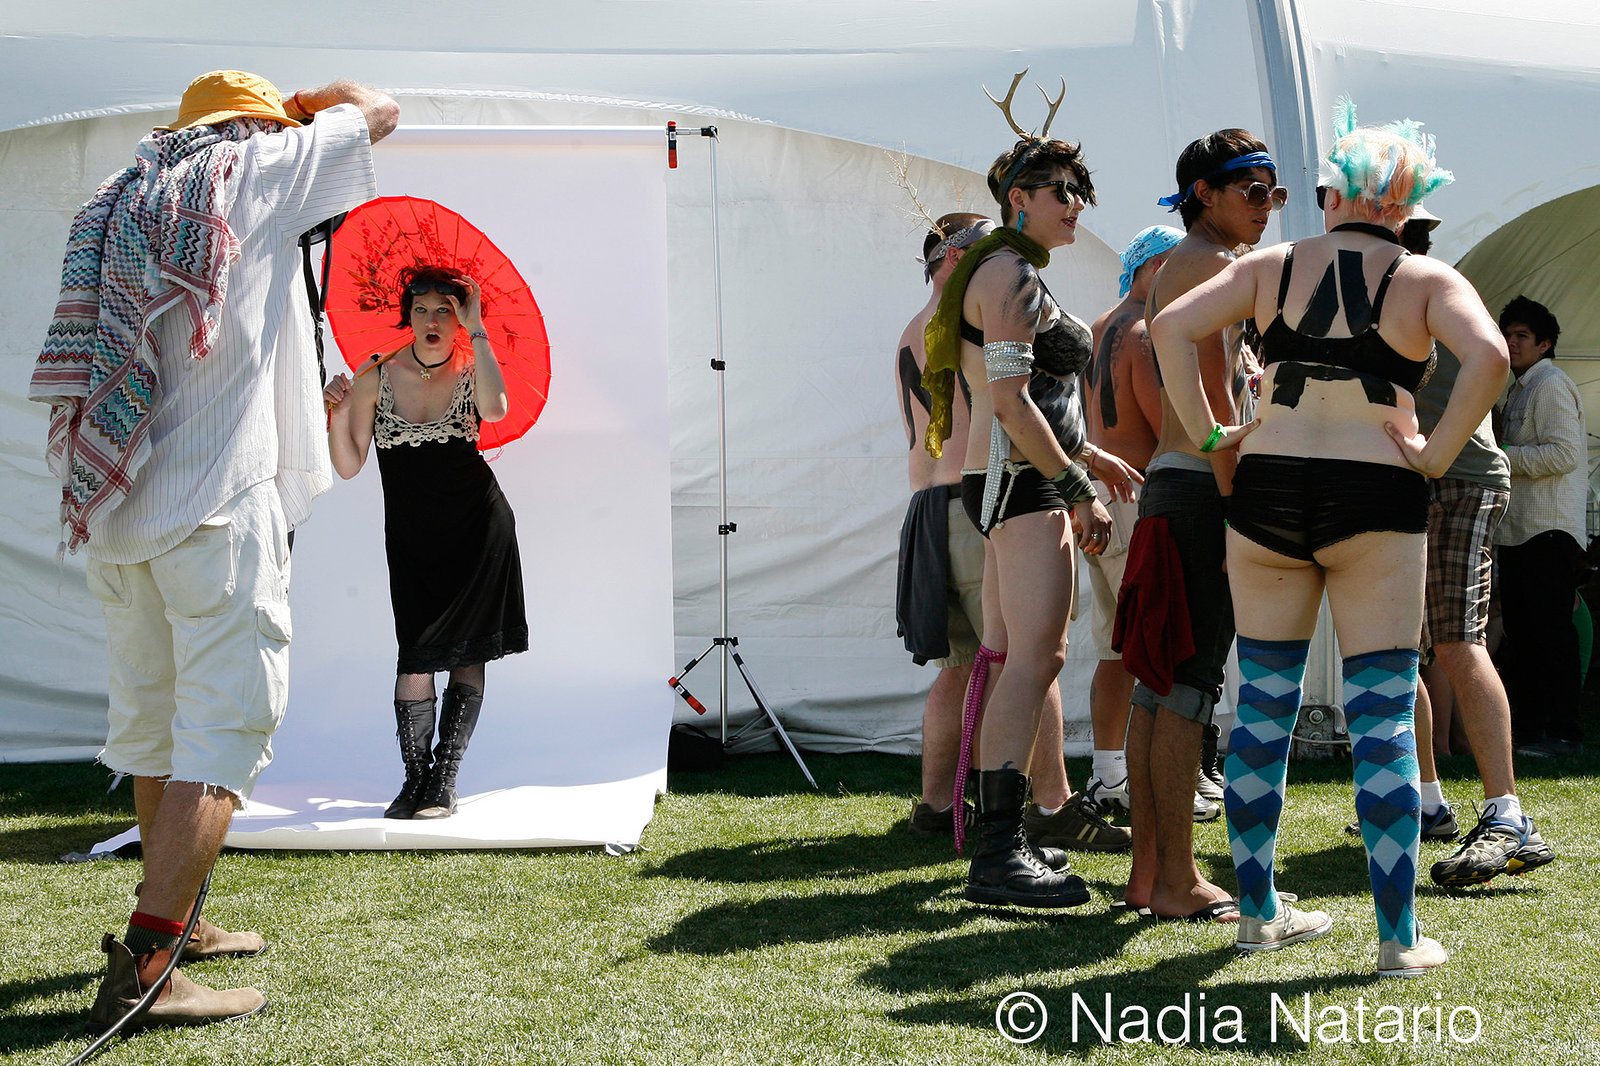 Behind The Scenes of Amanda Palmer LA Times Photo Shoot at Coachella 2009